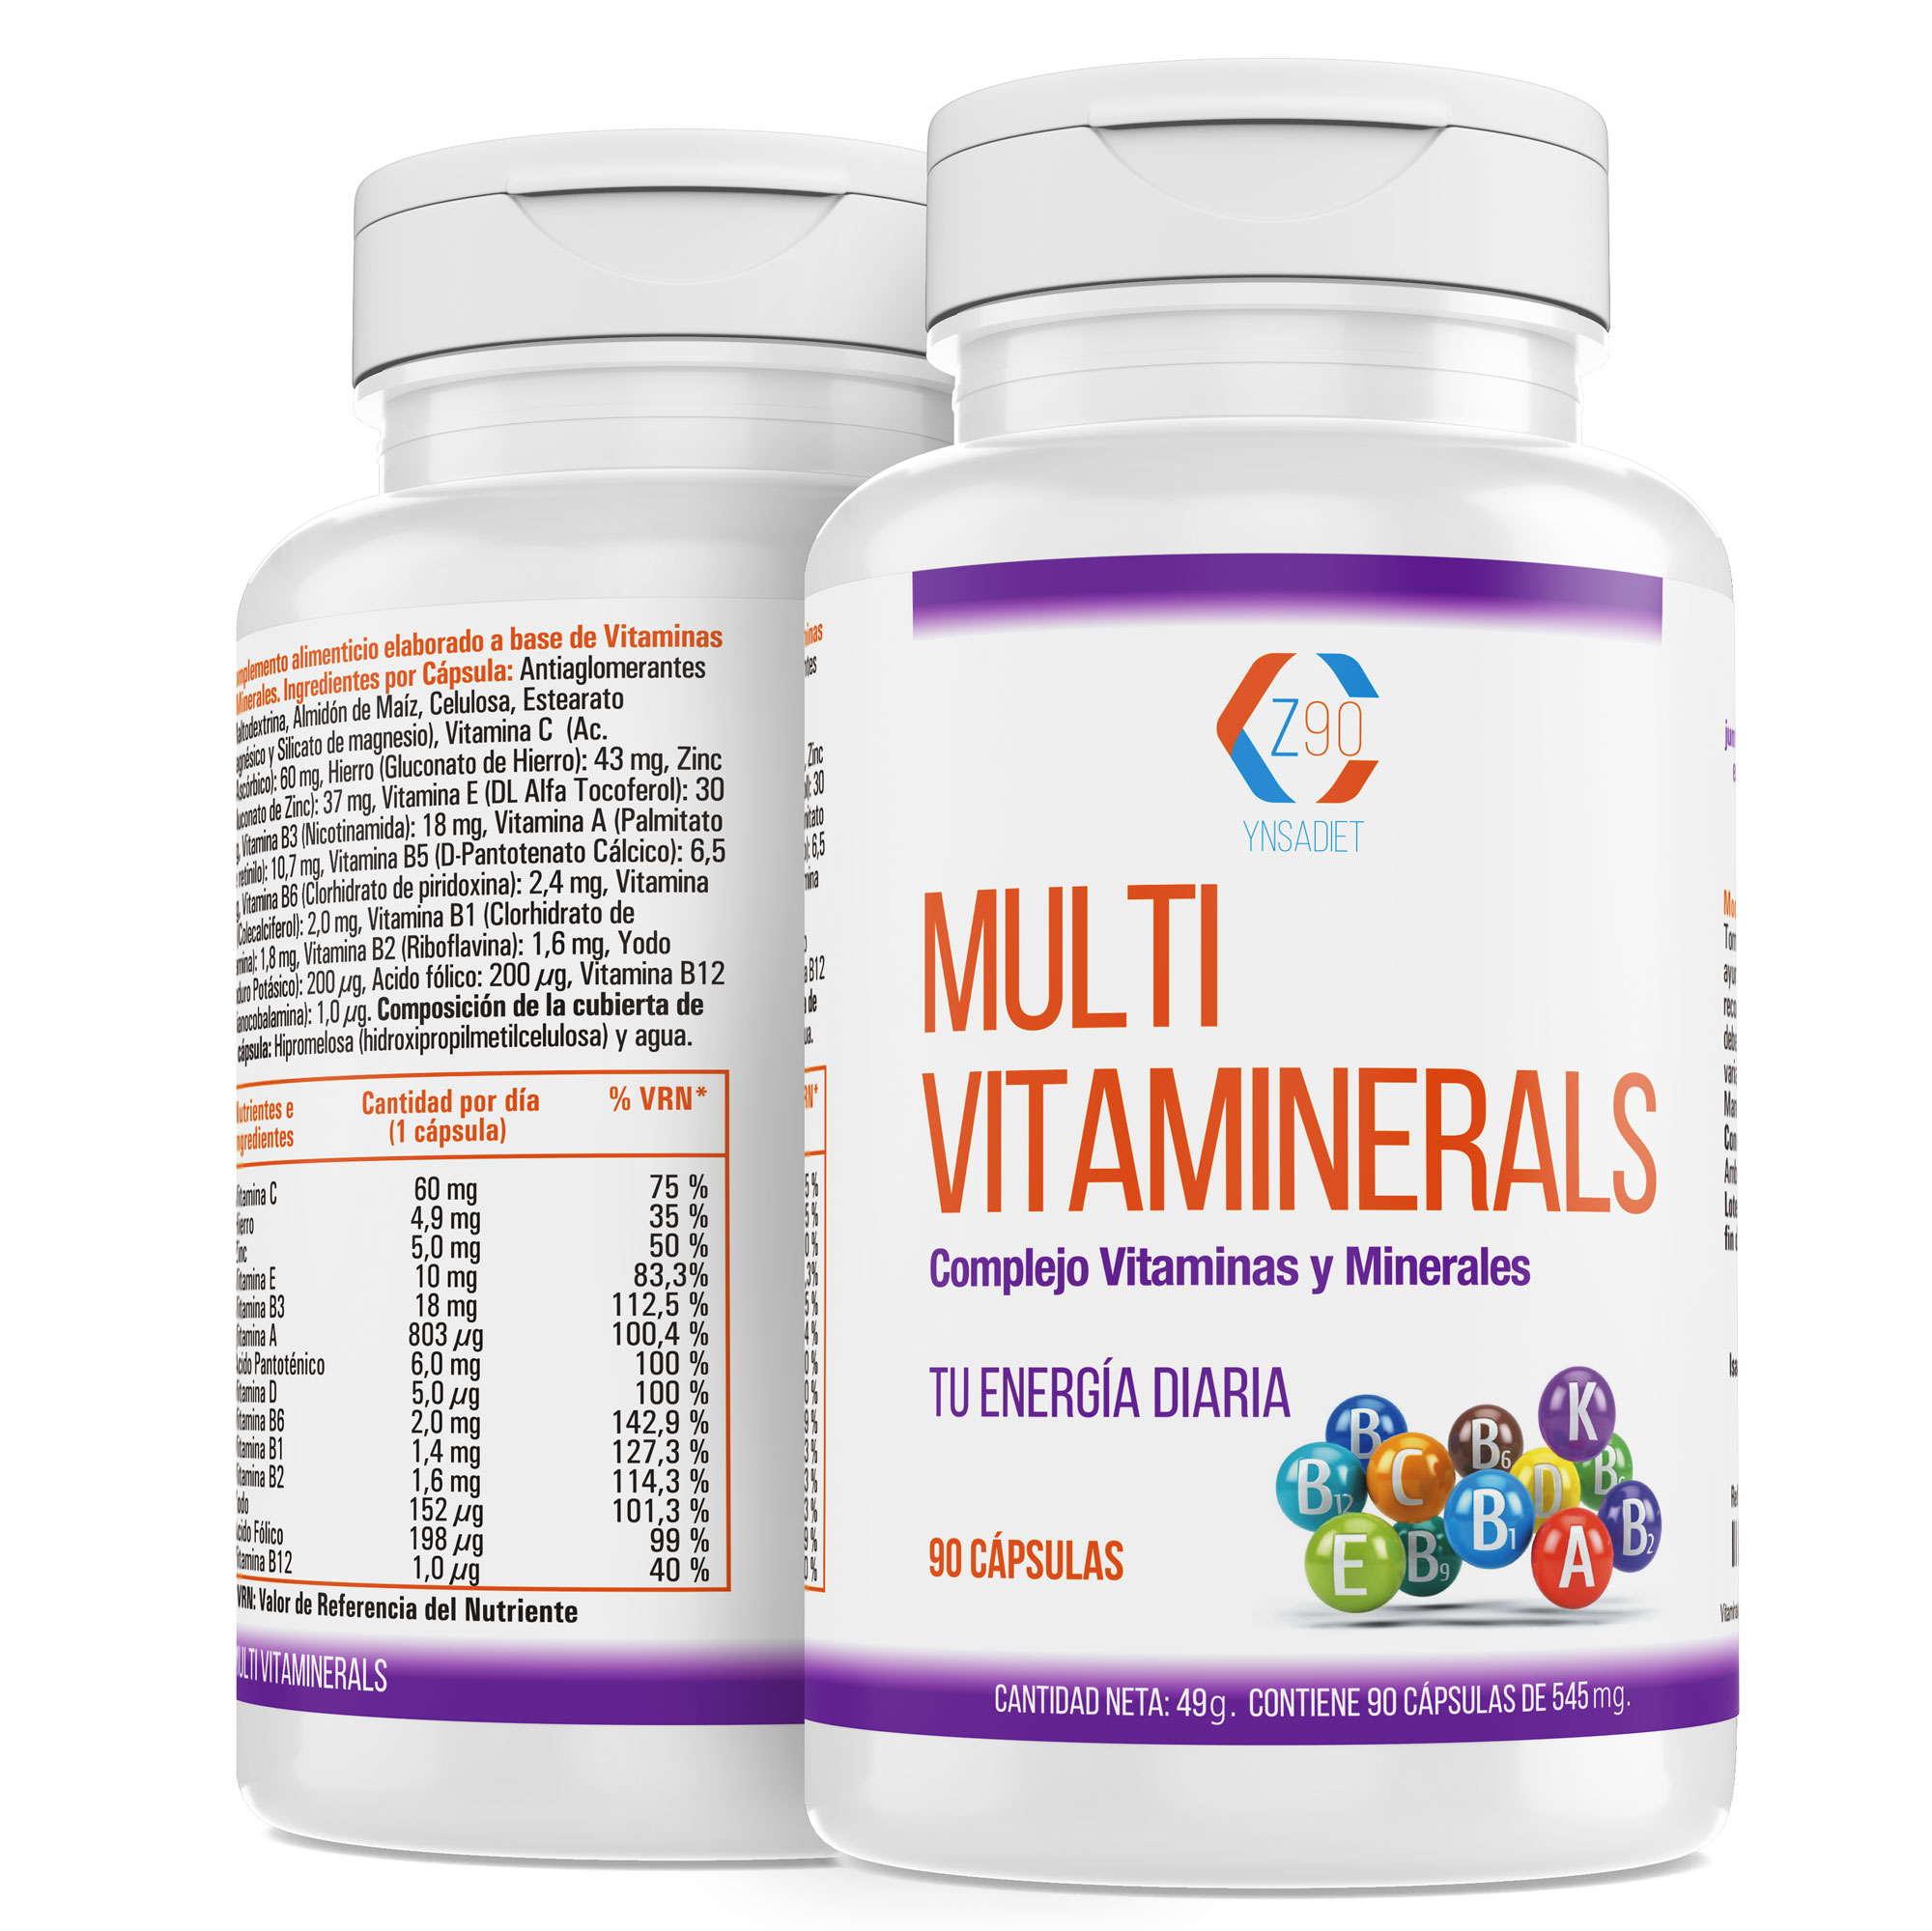 Vitamin with minerals, vitamin C and B2, B3, B5, B6 and B12 mas iron, multivitamino for exhaustion 90Capsulas (three months)